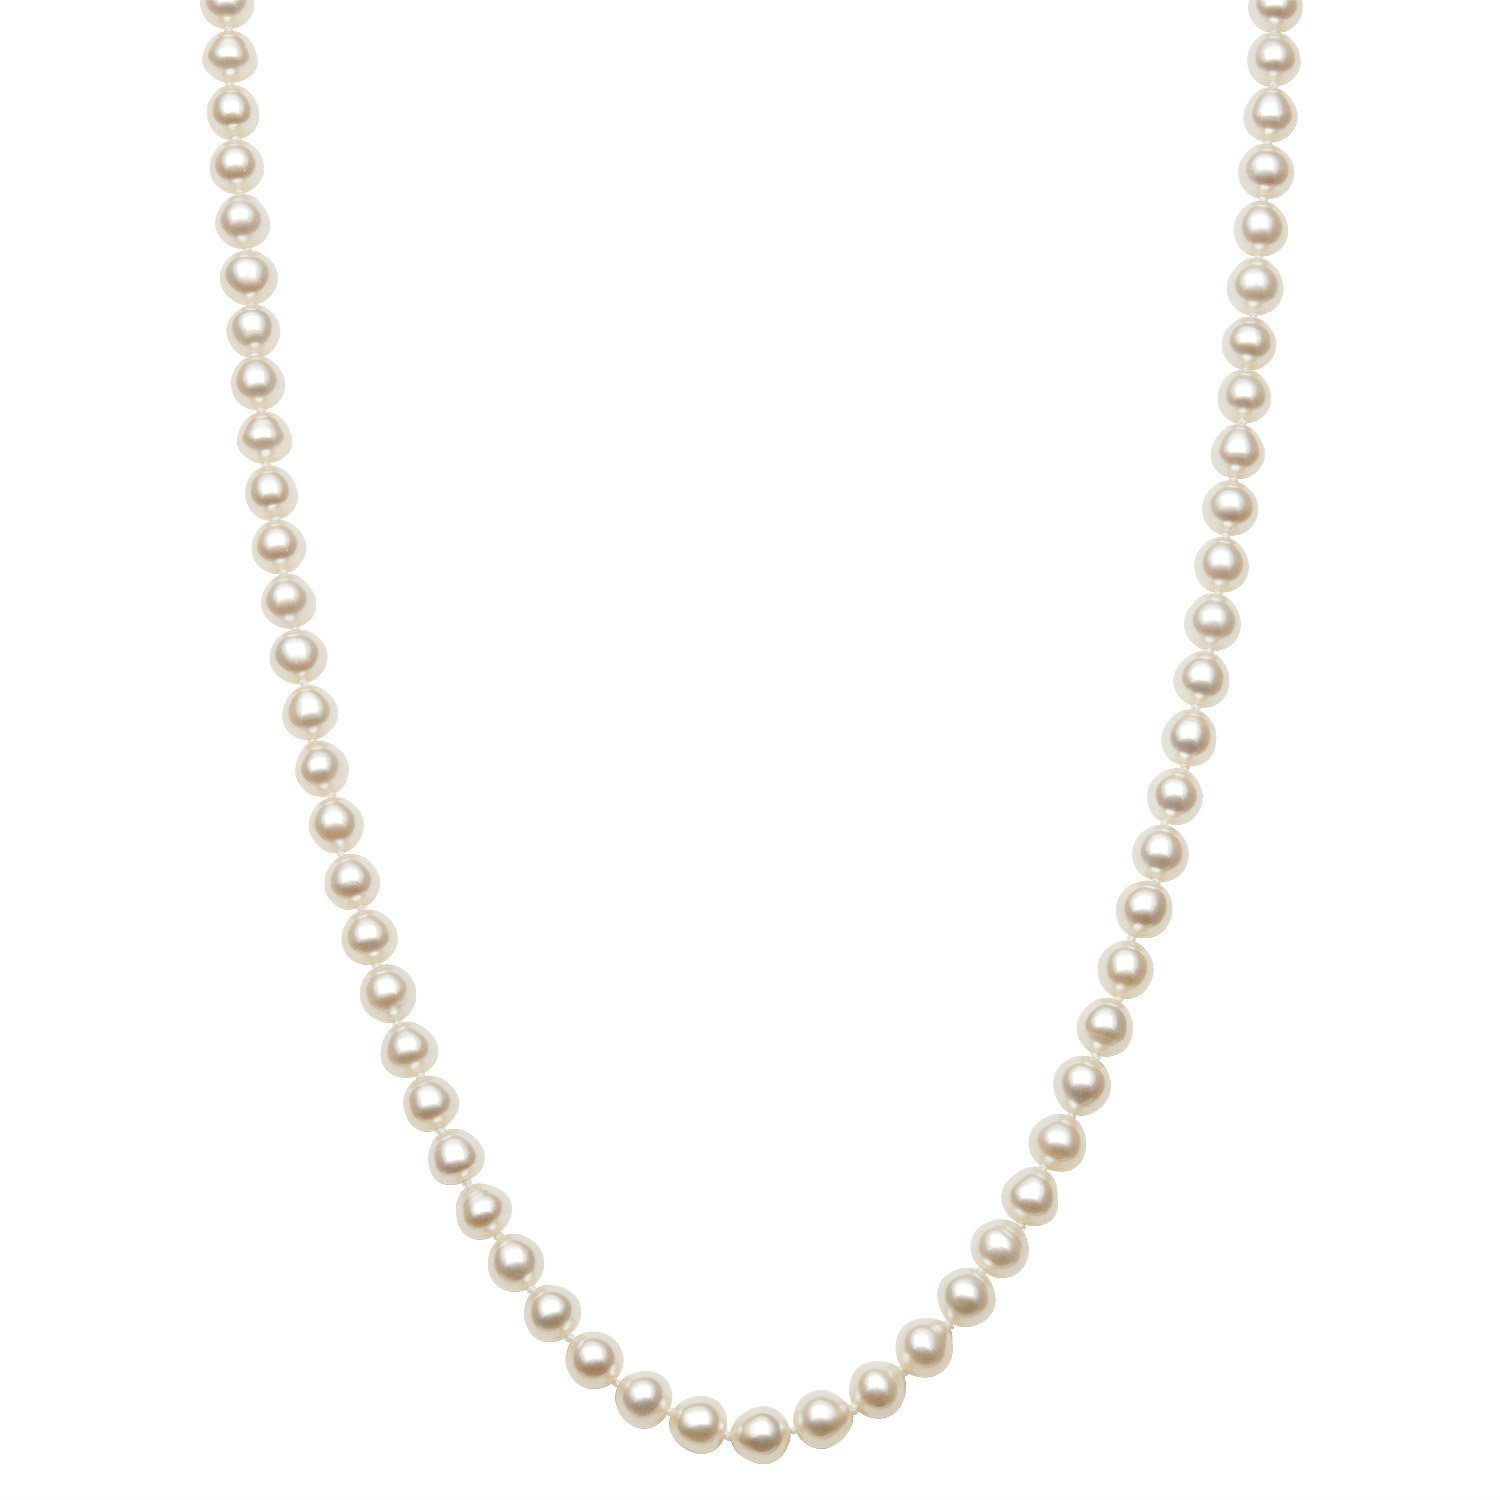 Endless Style 6.0-6.5mm White Cultured Freshwater Pearl Strand Necklace, 64'' No Metal by Pearlzzz